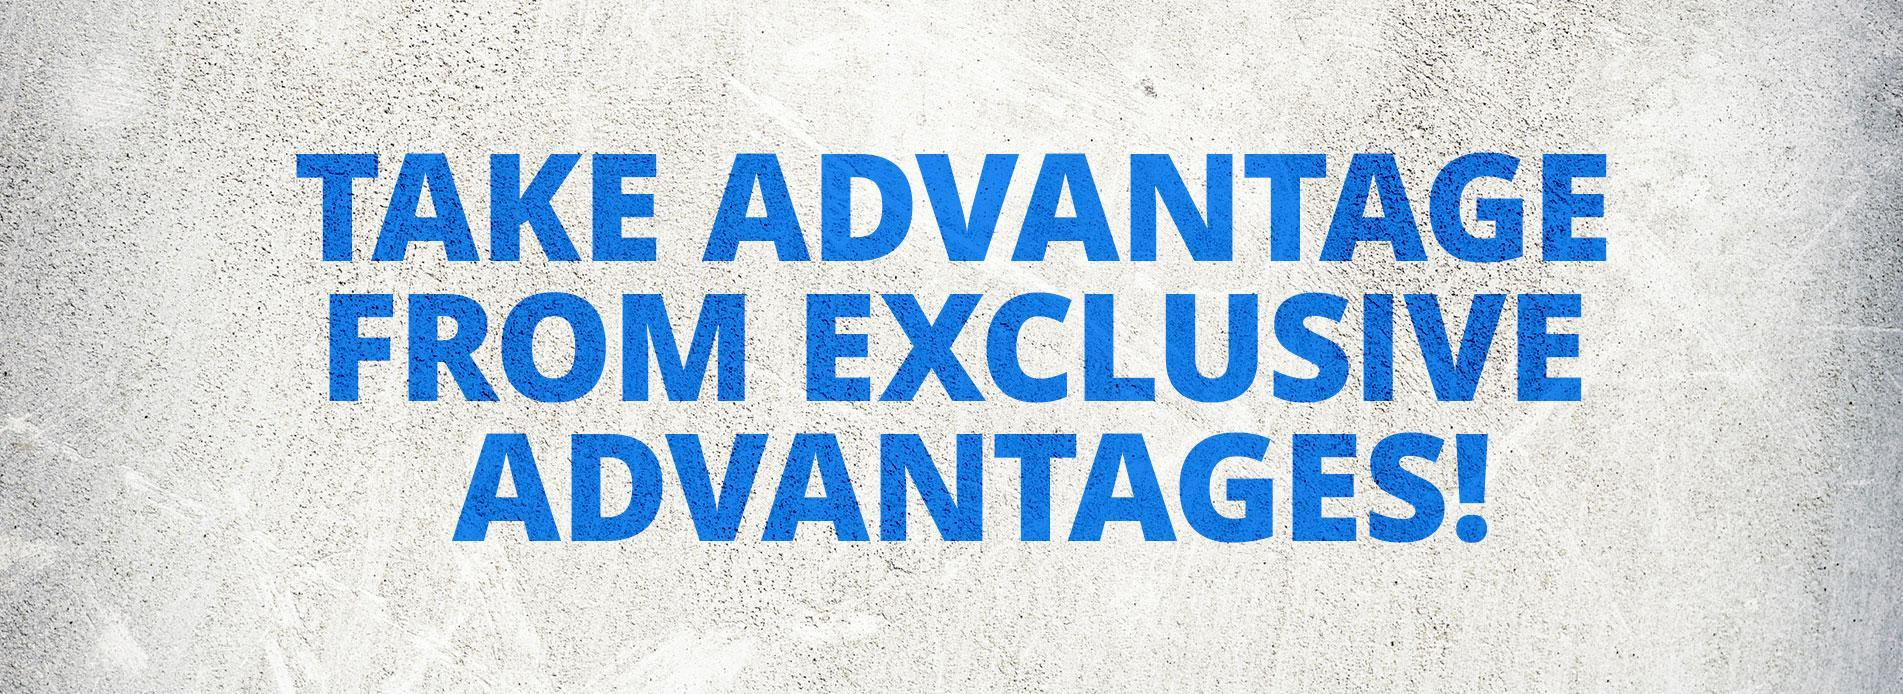 Advantage exclusive